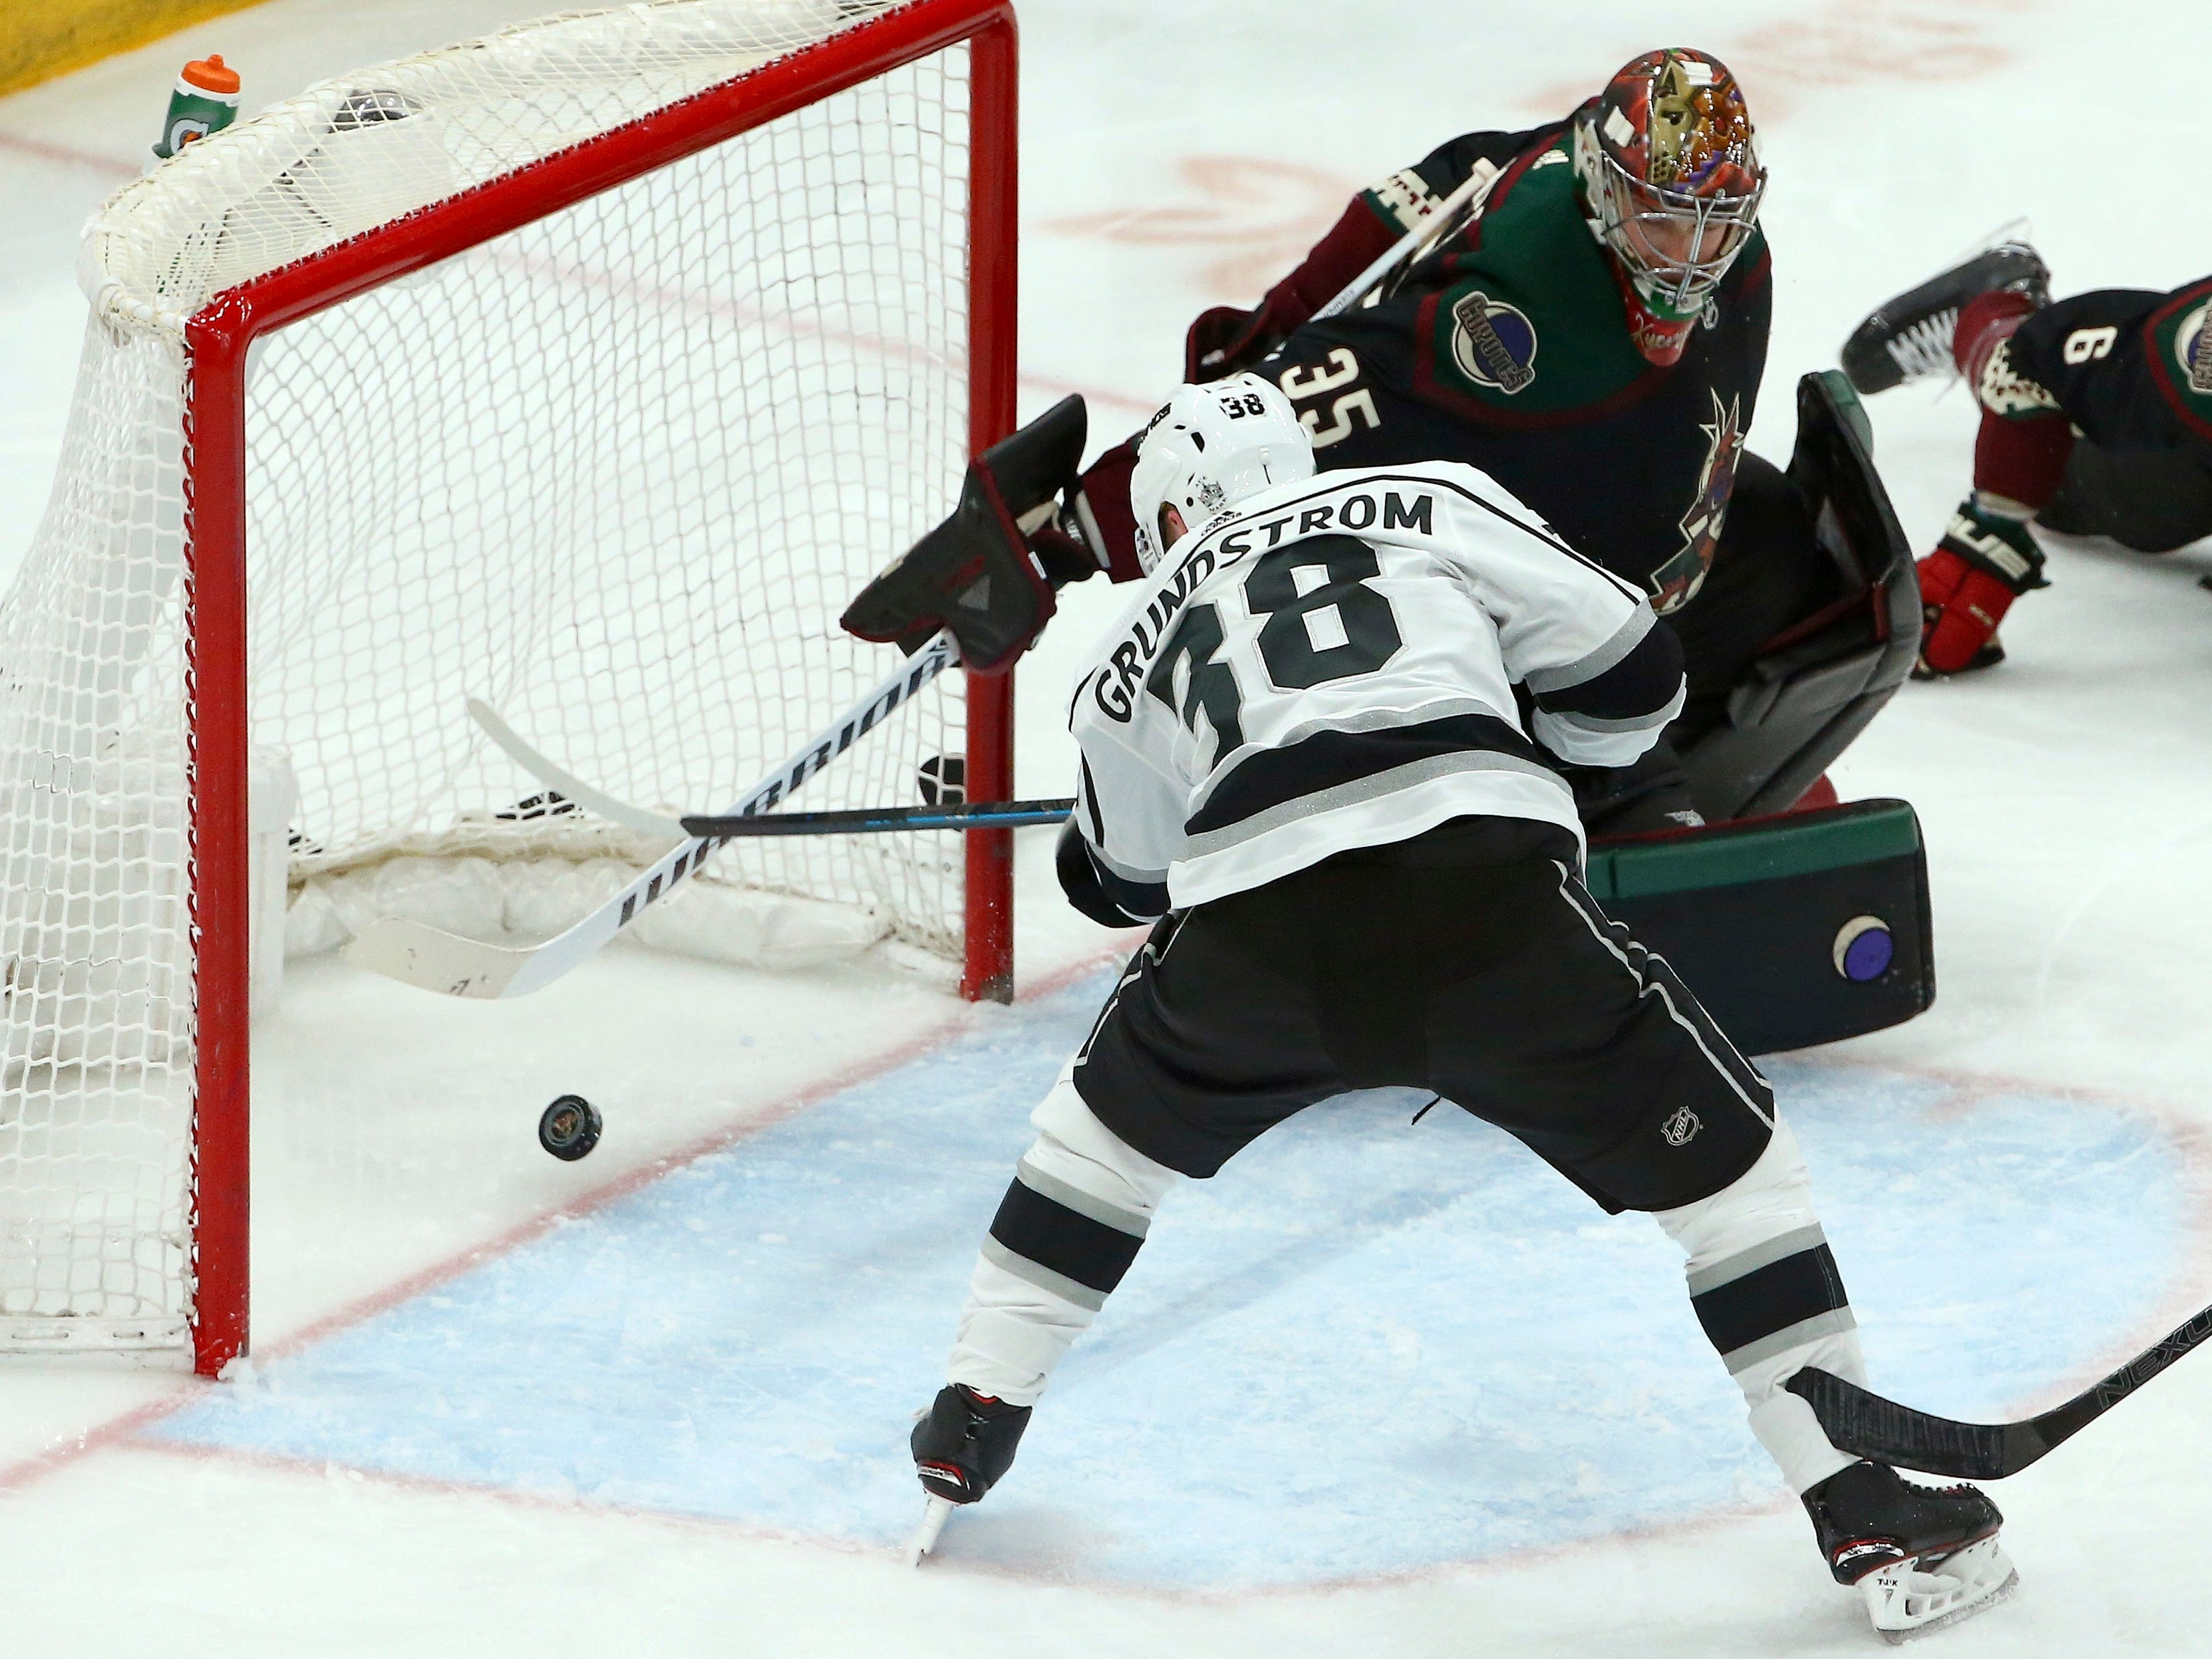 Los Angeles Kings right wing Carl Grundstrom (38) scores a goal against Arizona Coyotes goaltender Darcy Kuemper, top right, during the third period of an NHL hockey game Saturday, March 9, 2019, in Glendale, Ariz. For the Kings' Grundstrom it was his first NHL goal in his first game, but the Coyotes defeated the Kings 4-2.